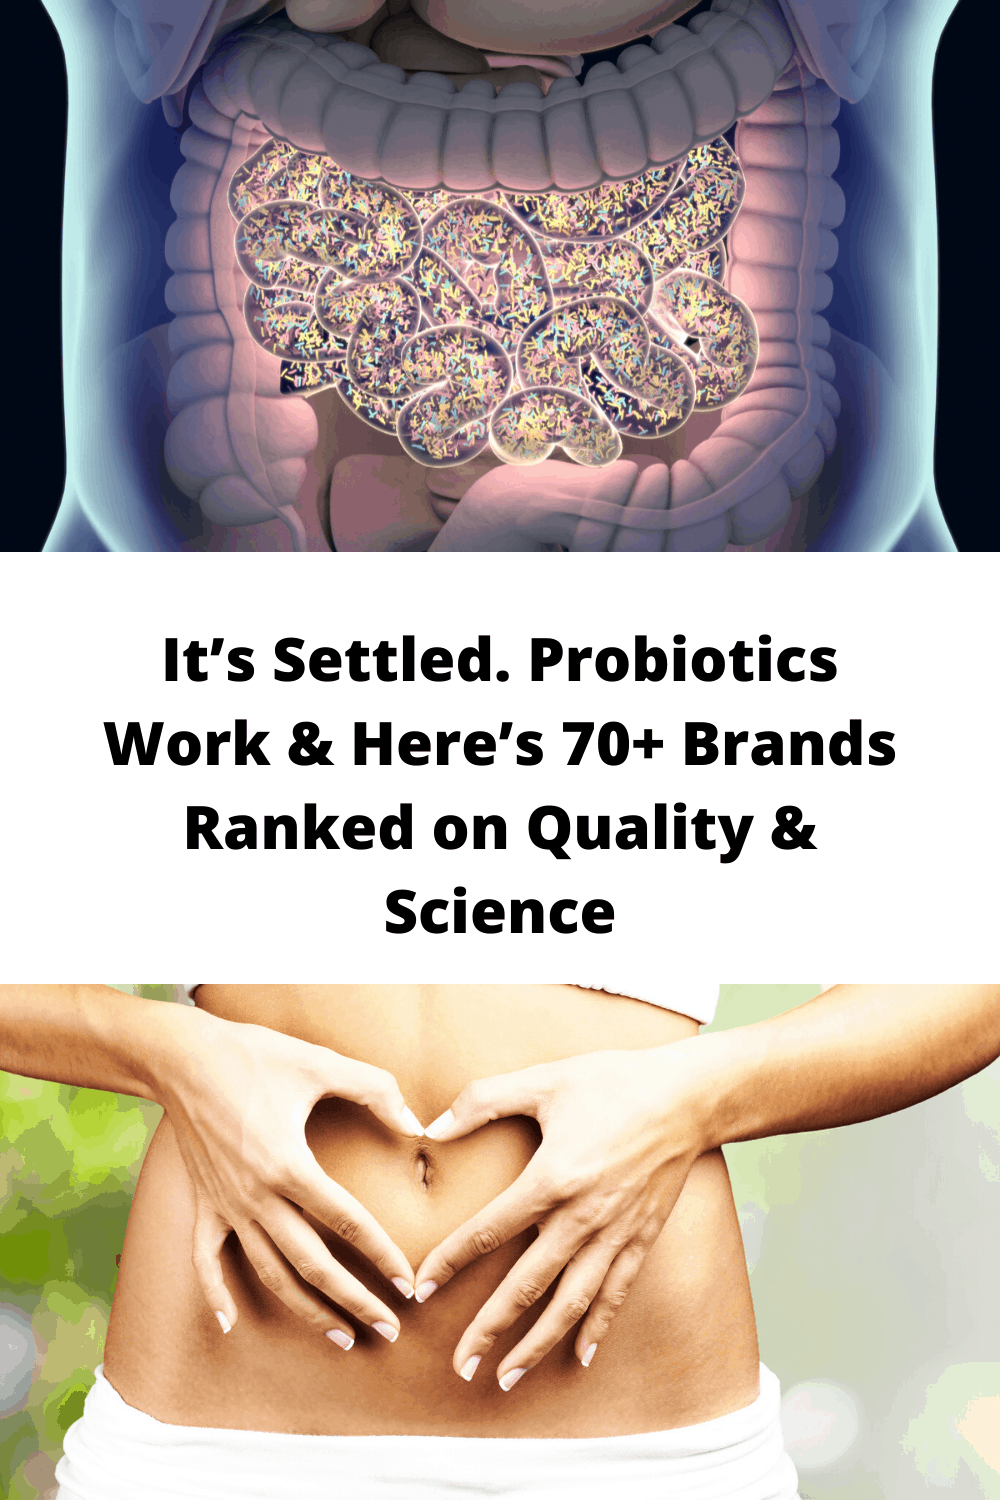 It's Settled. Probiotics Work & Here's 70+ Brands Ranked on Quality & Science